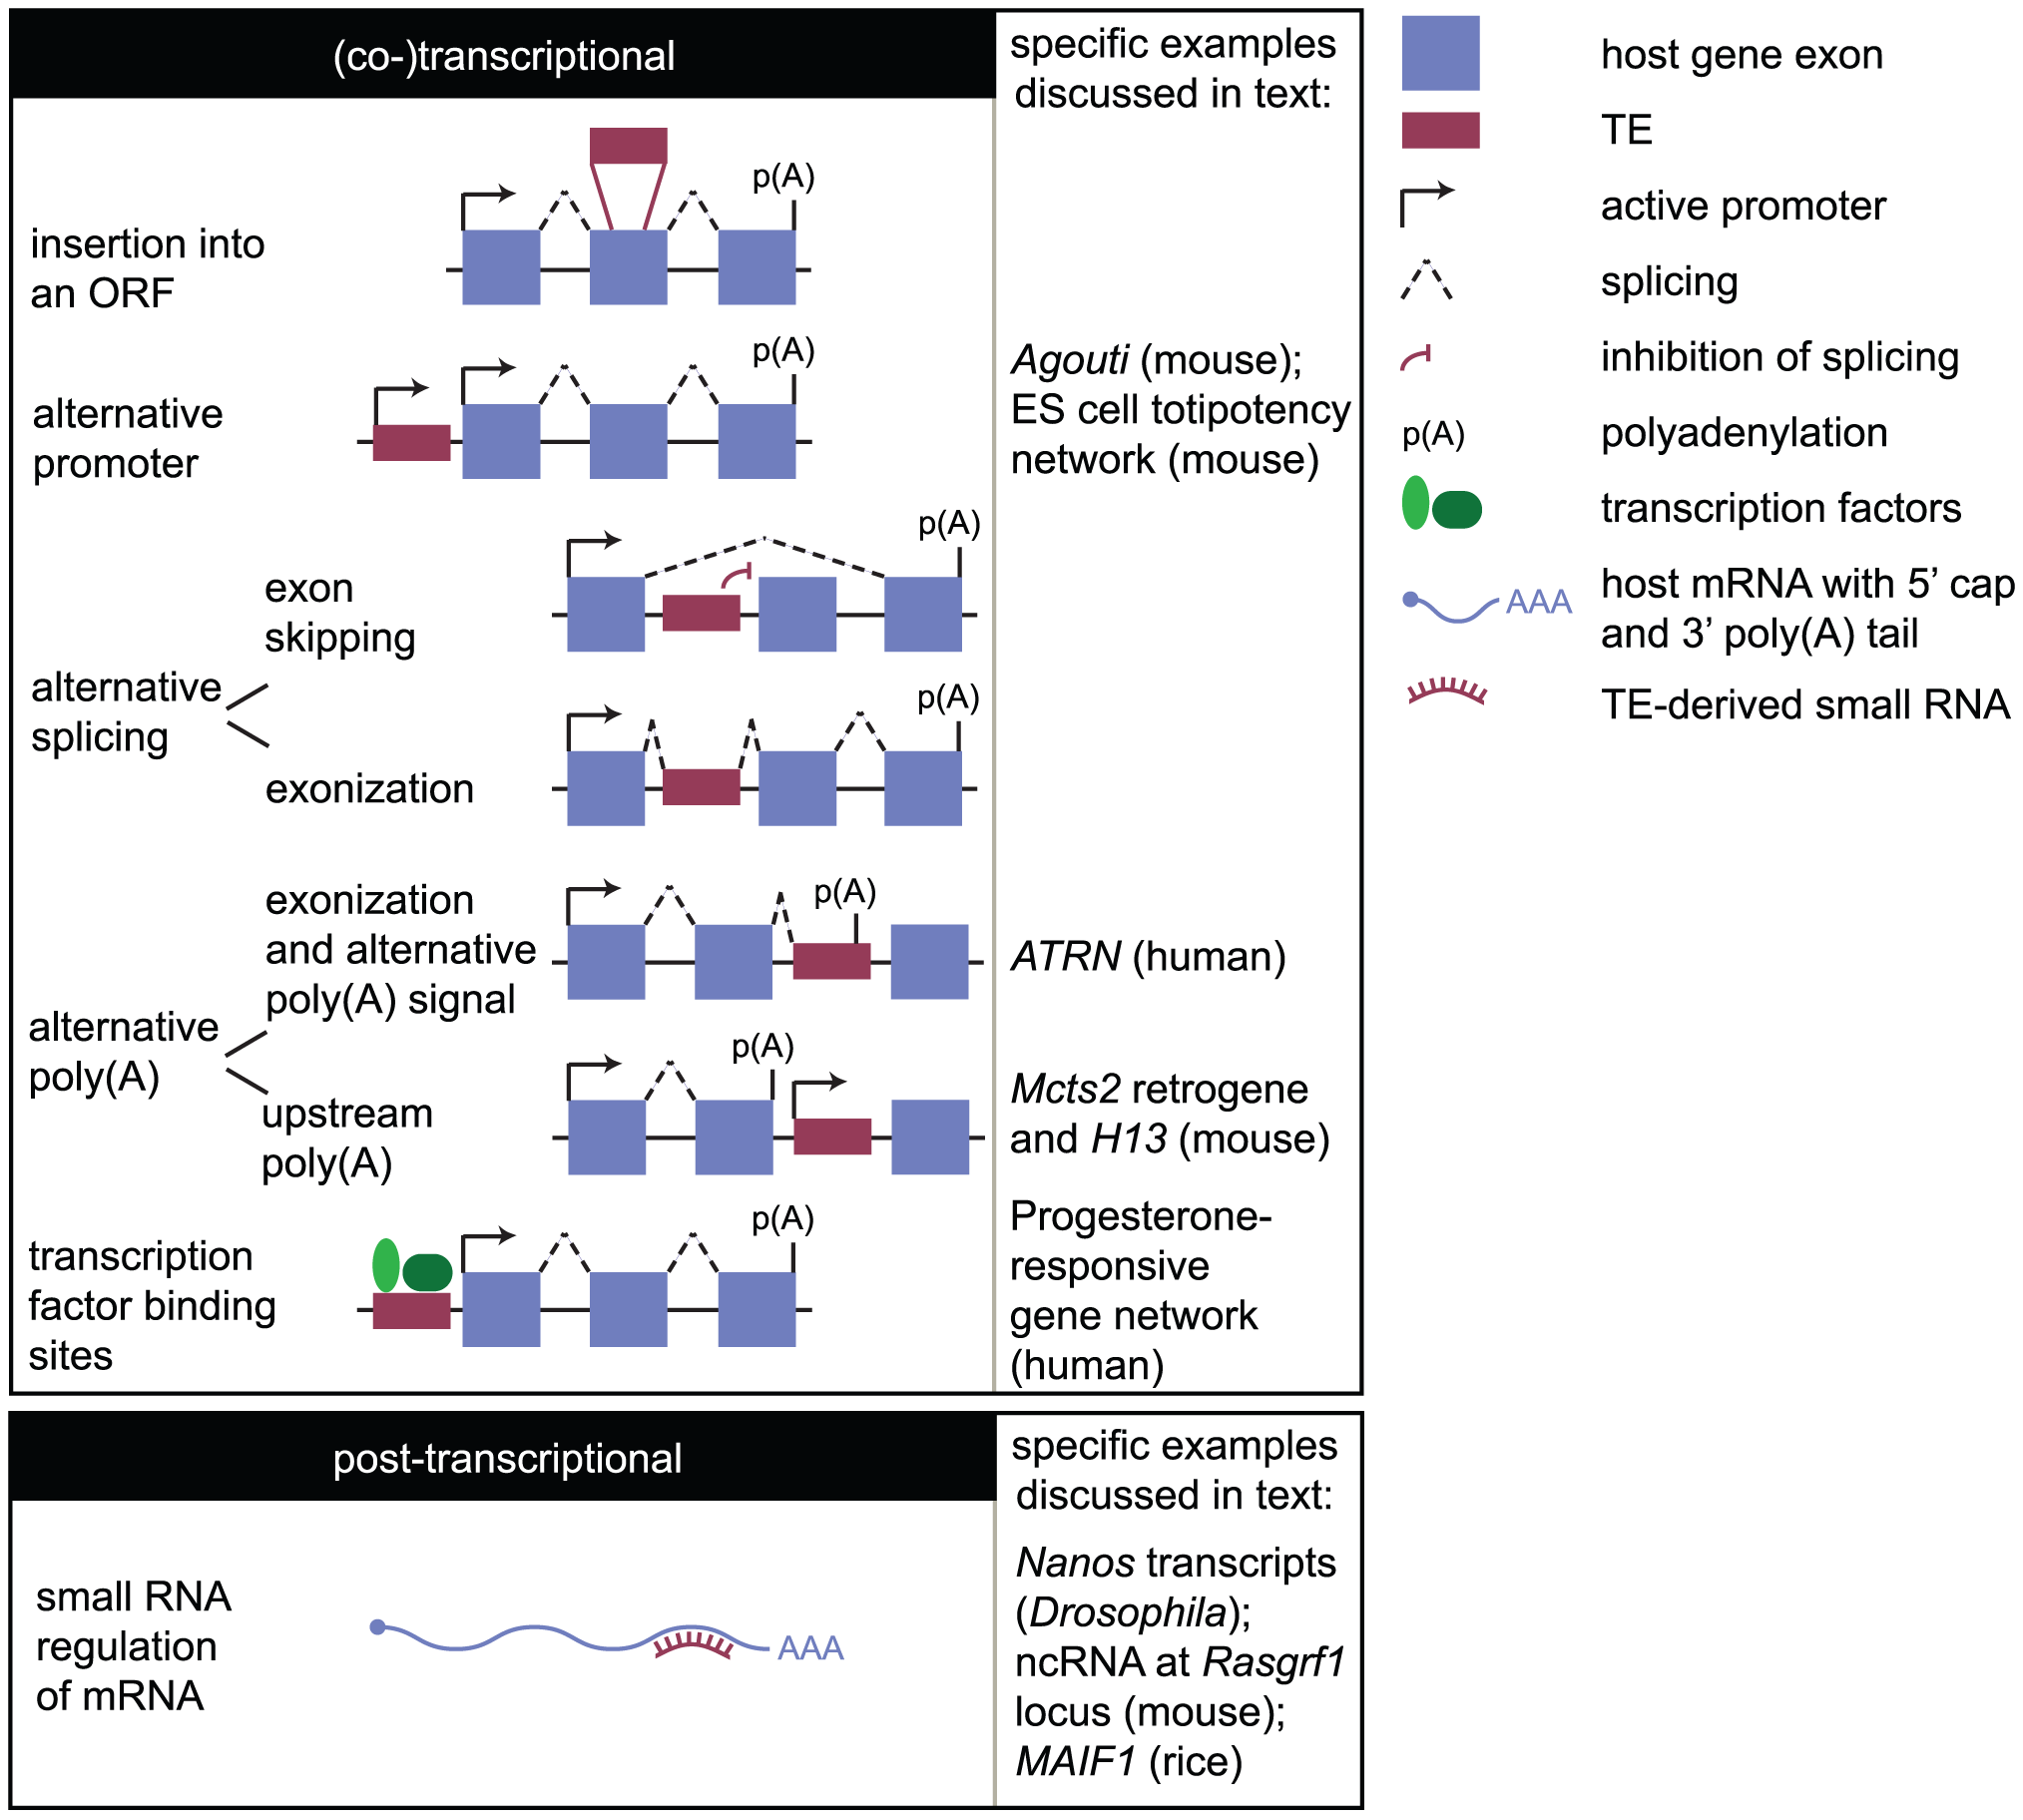 How the mobilome can impact the transcriptome.